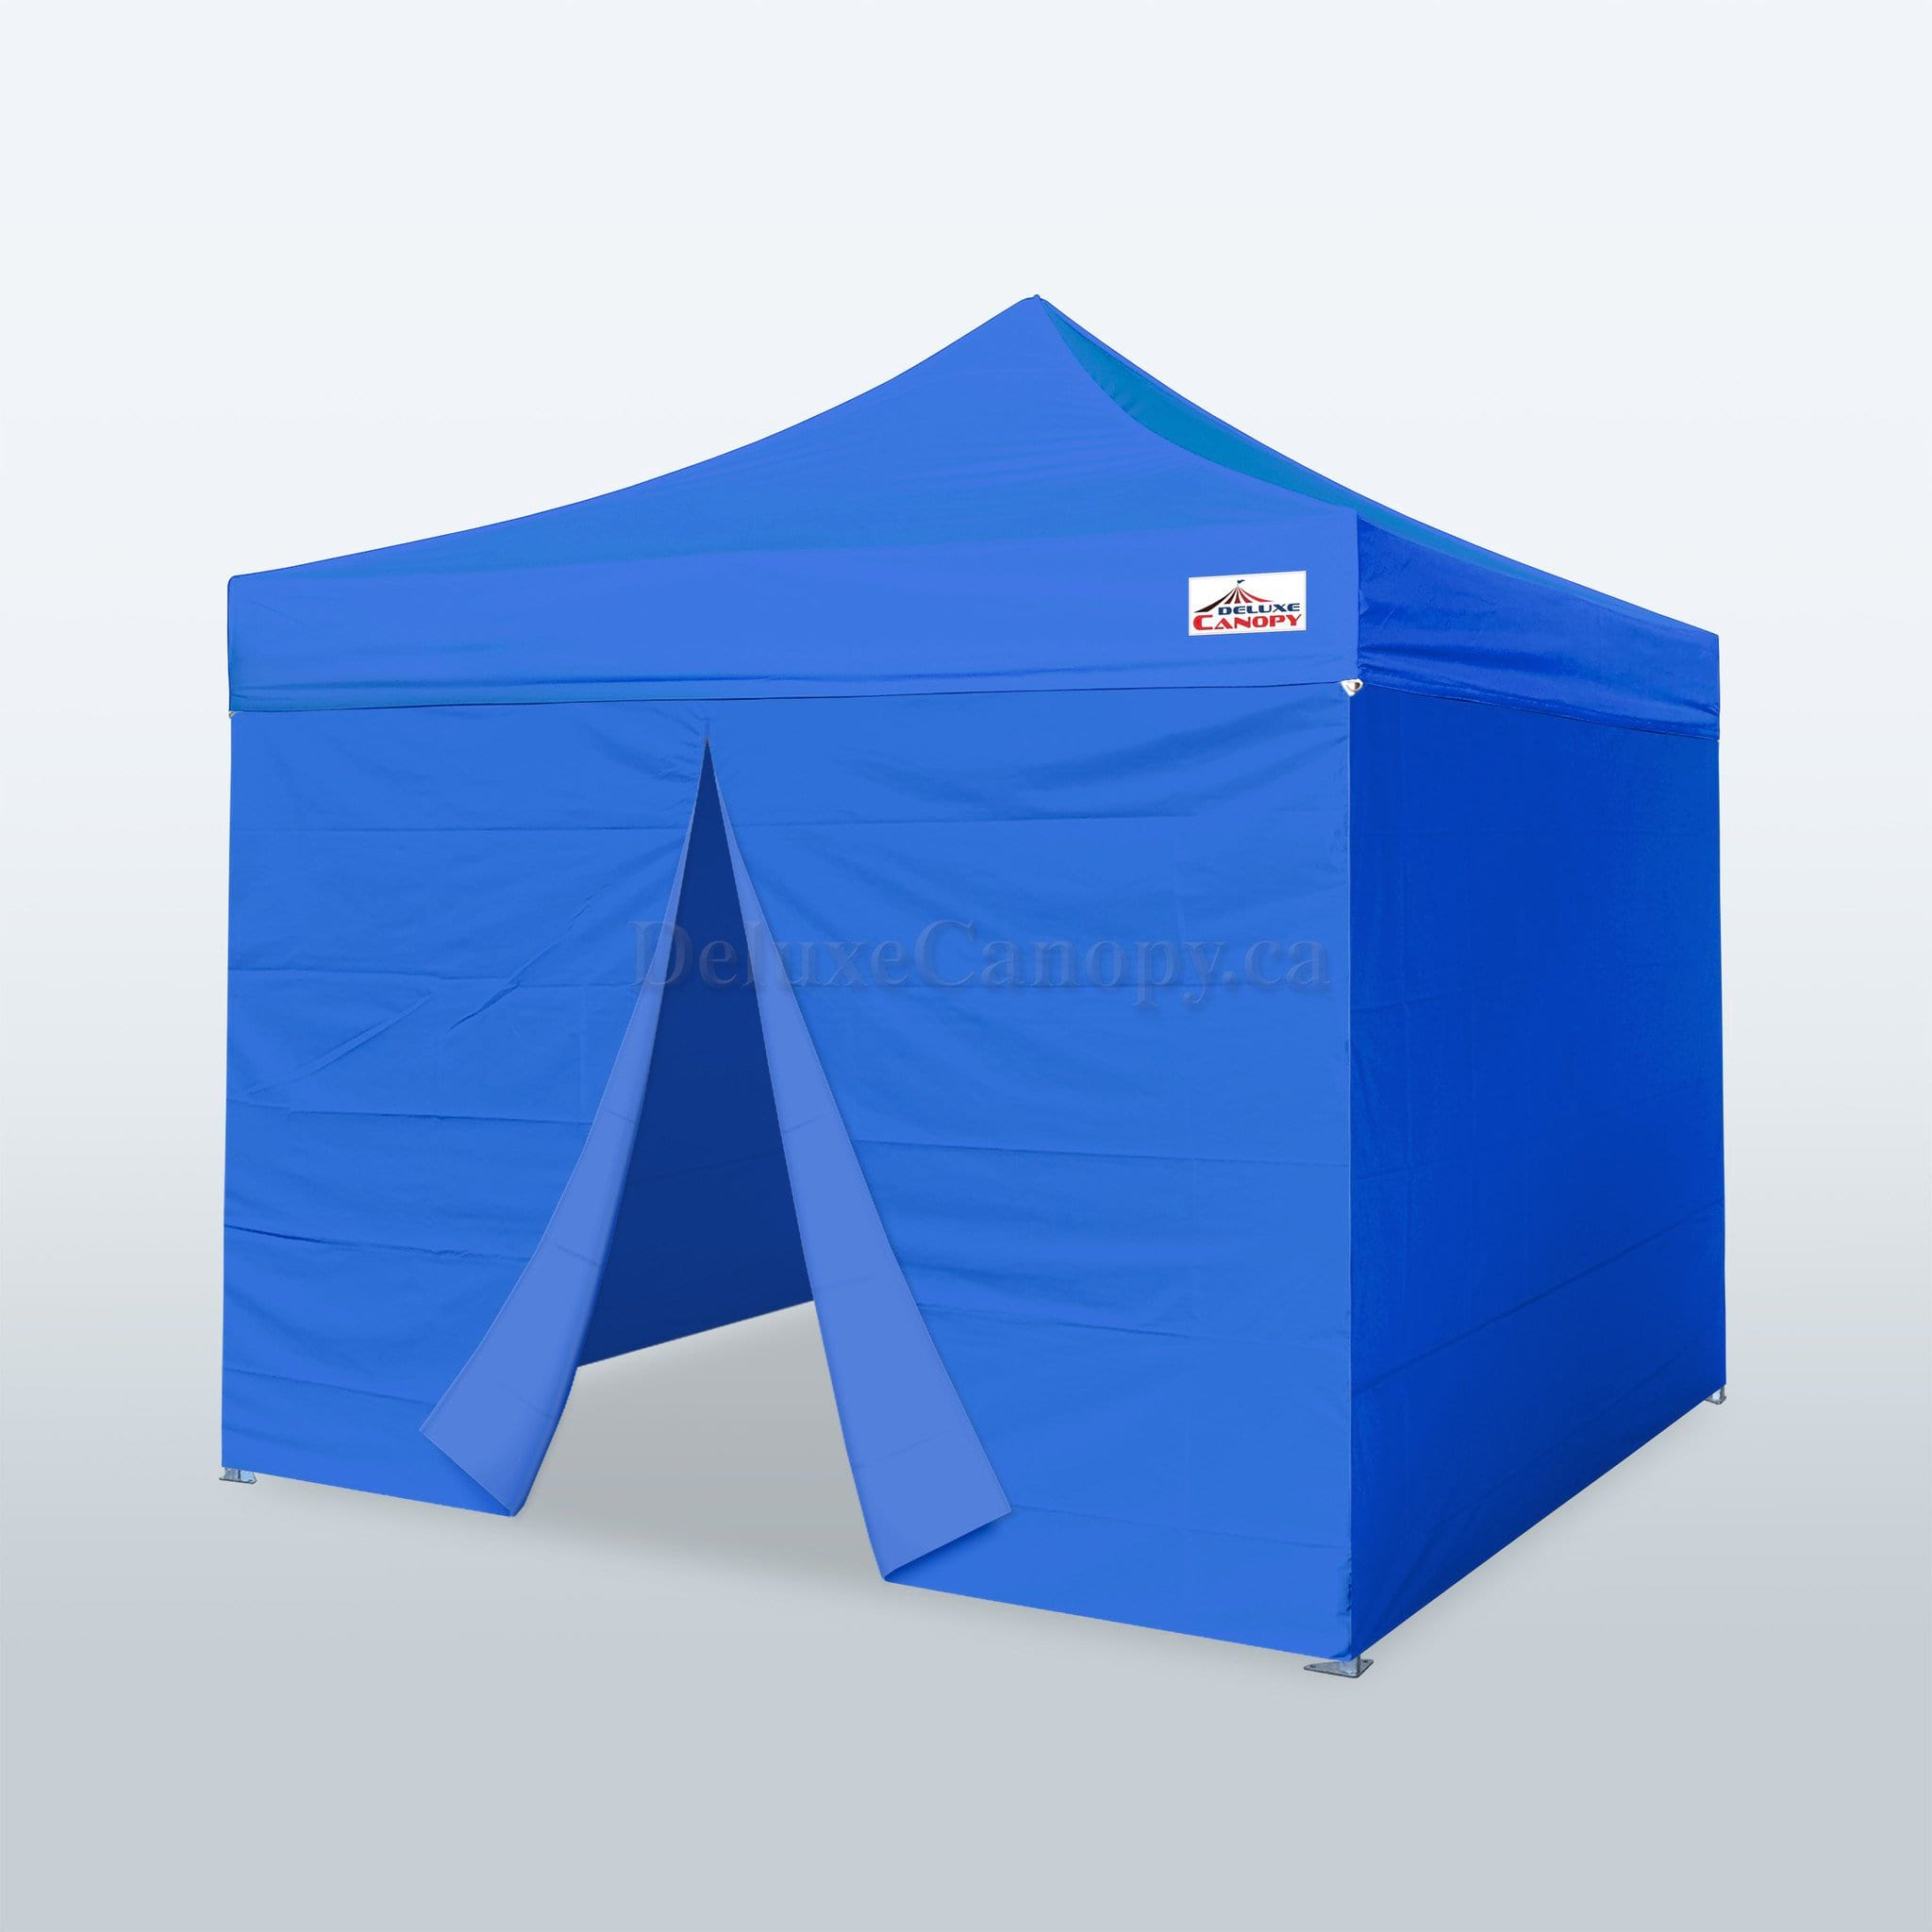 & 10x10 Pop Up Canopy Tent   ProShade Gazebo Tent Walls - Deluxe Canopy